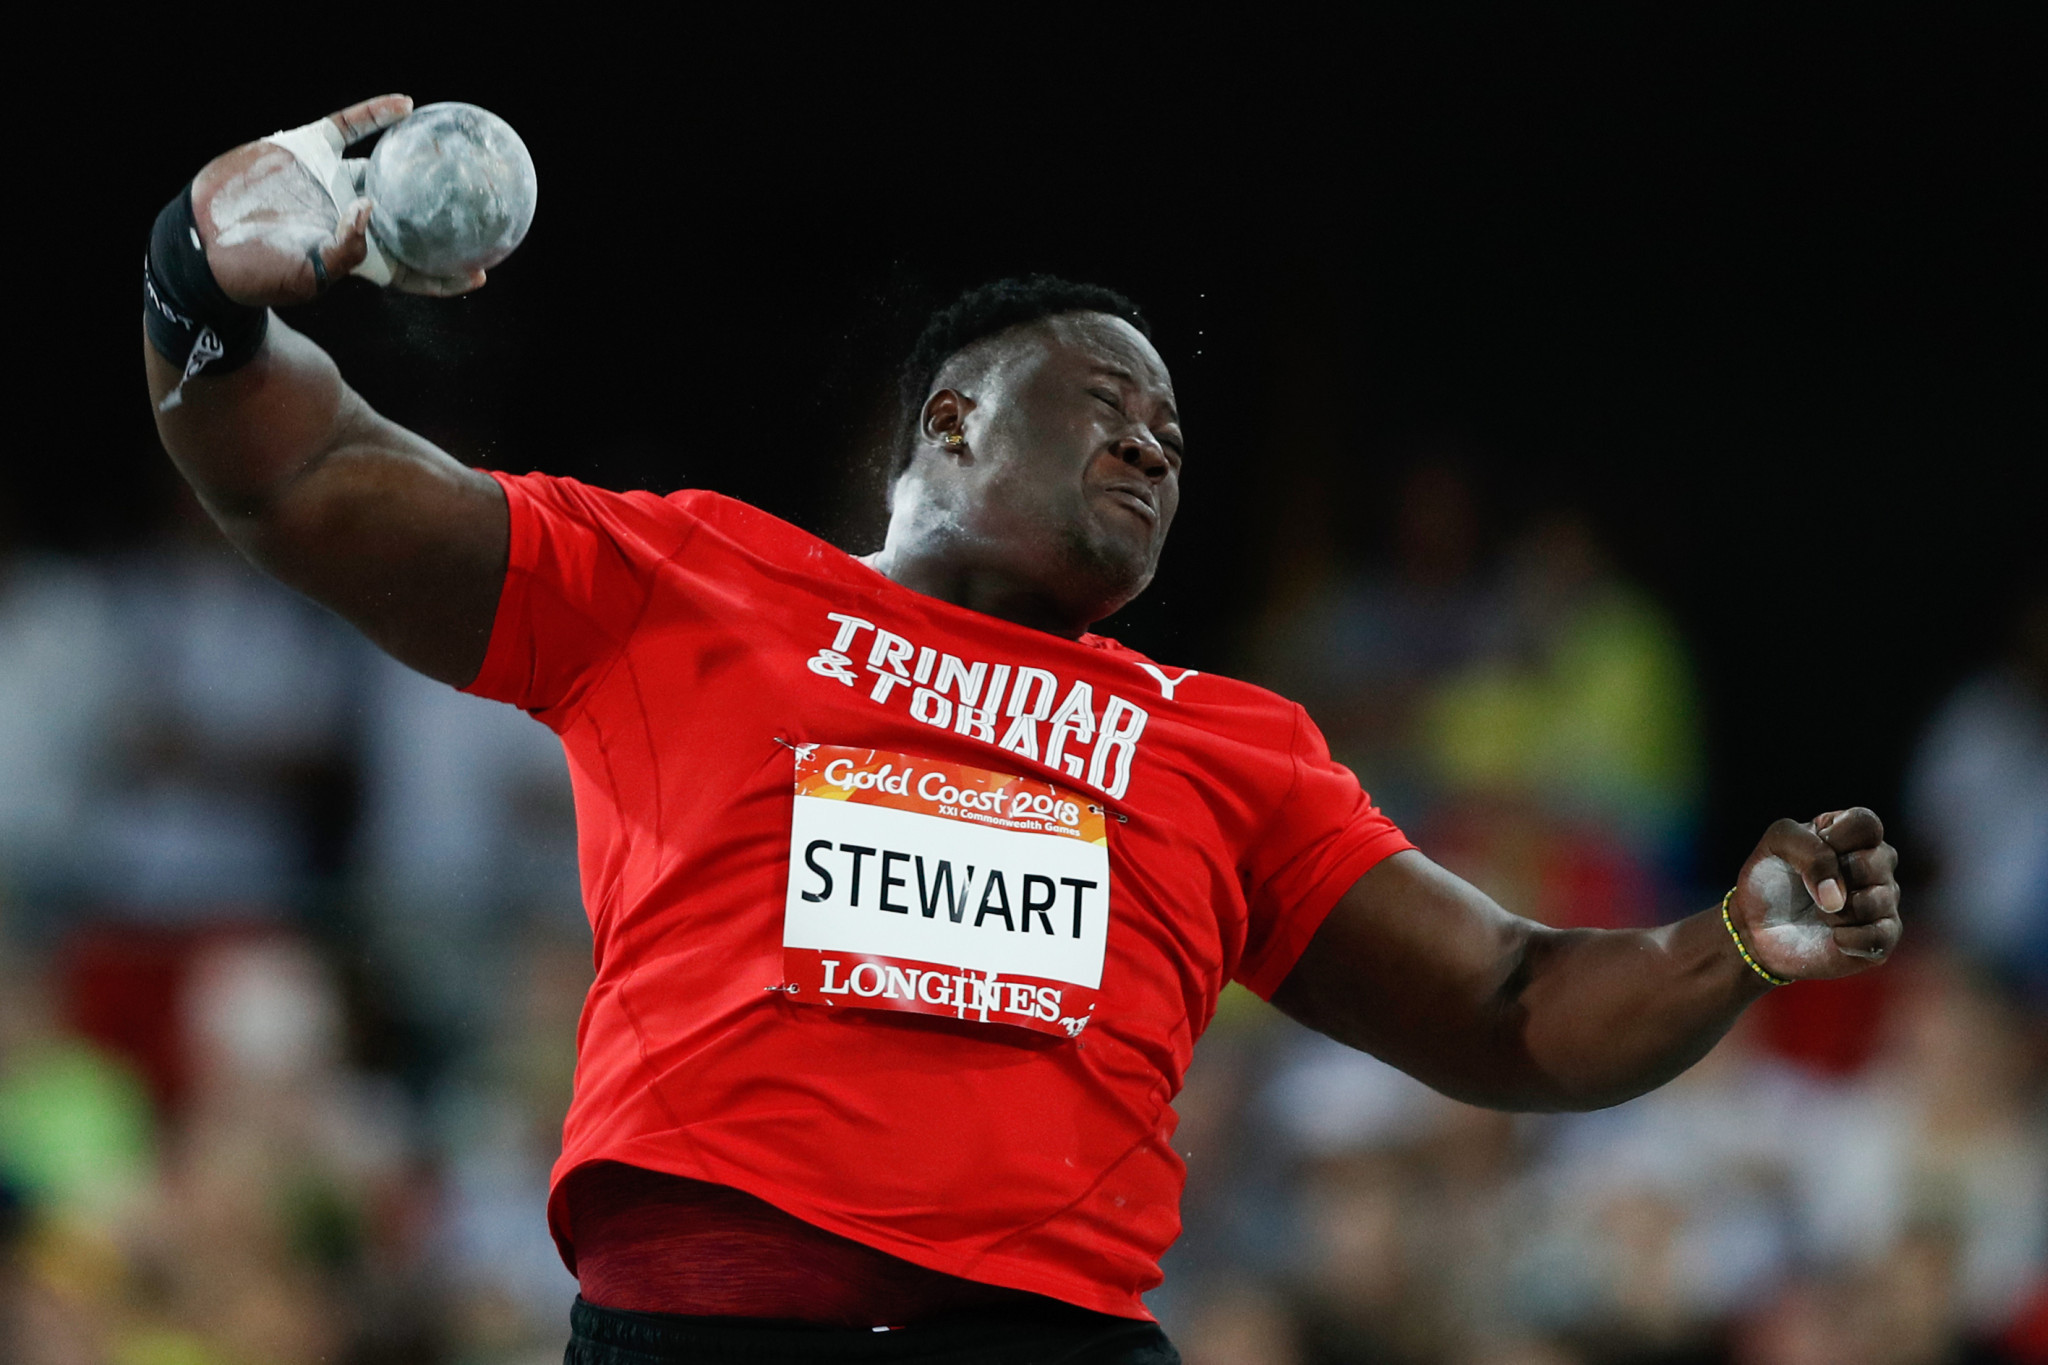 Akeem Stewart from Trinidad and Tobago has been shortlisted for the Americas Paralympic Committee Best Male Athlete of August award after winning two gold medals at the Parapan Games in Lima ©Getty Images